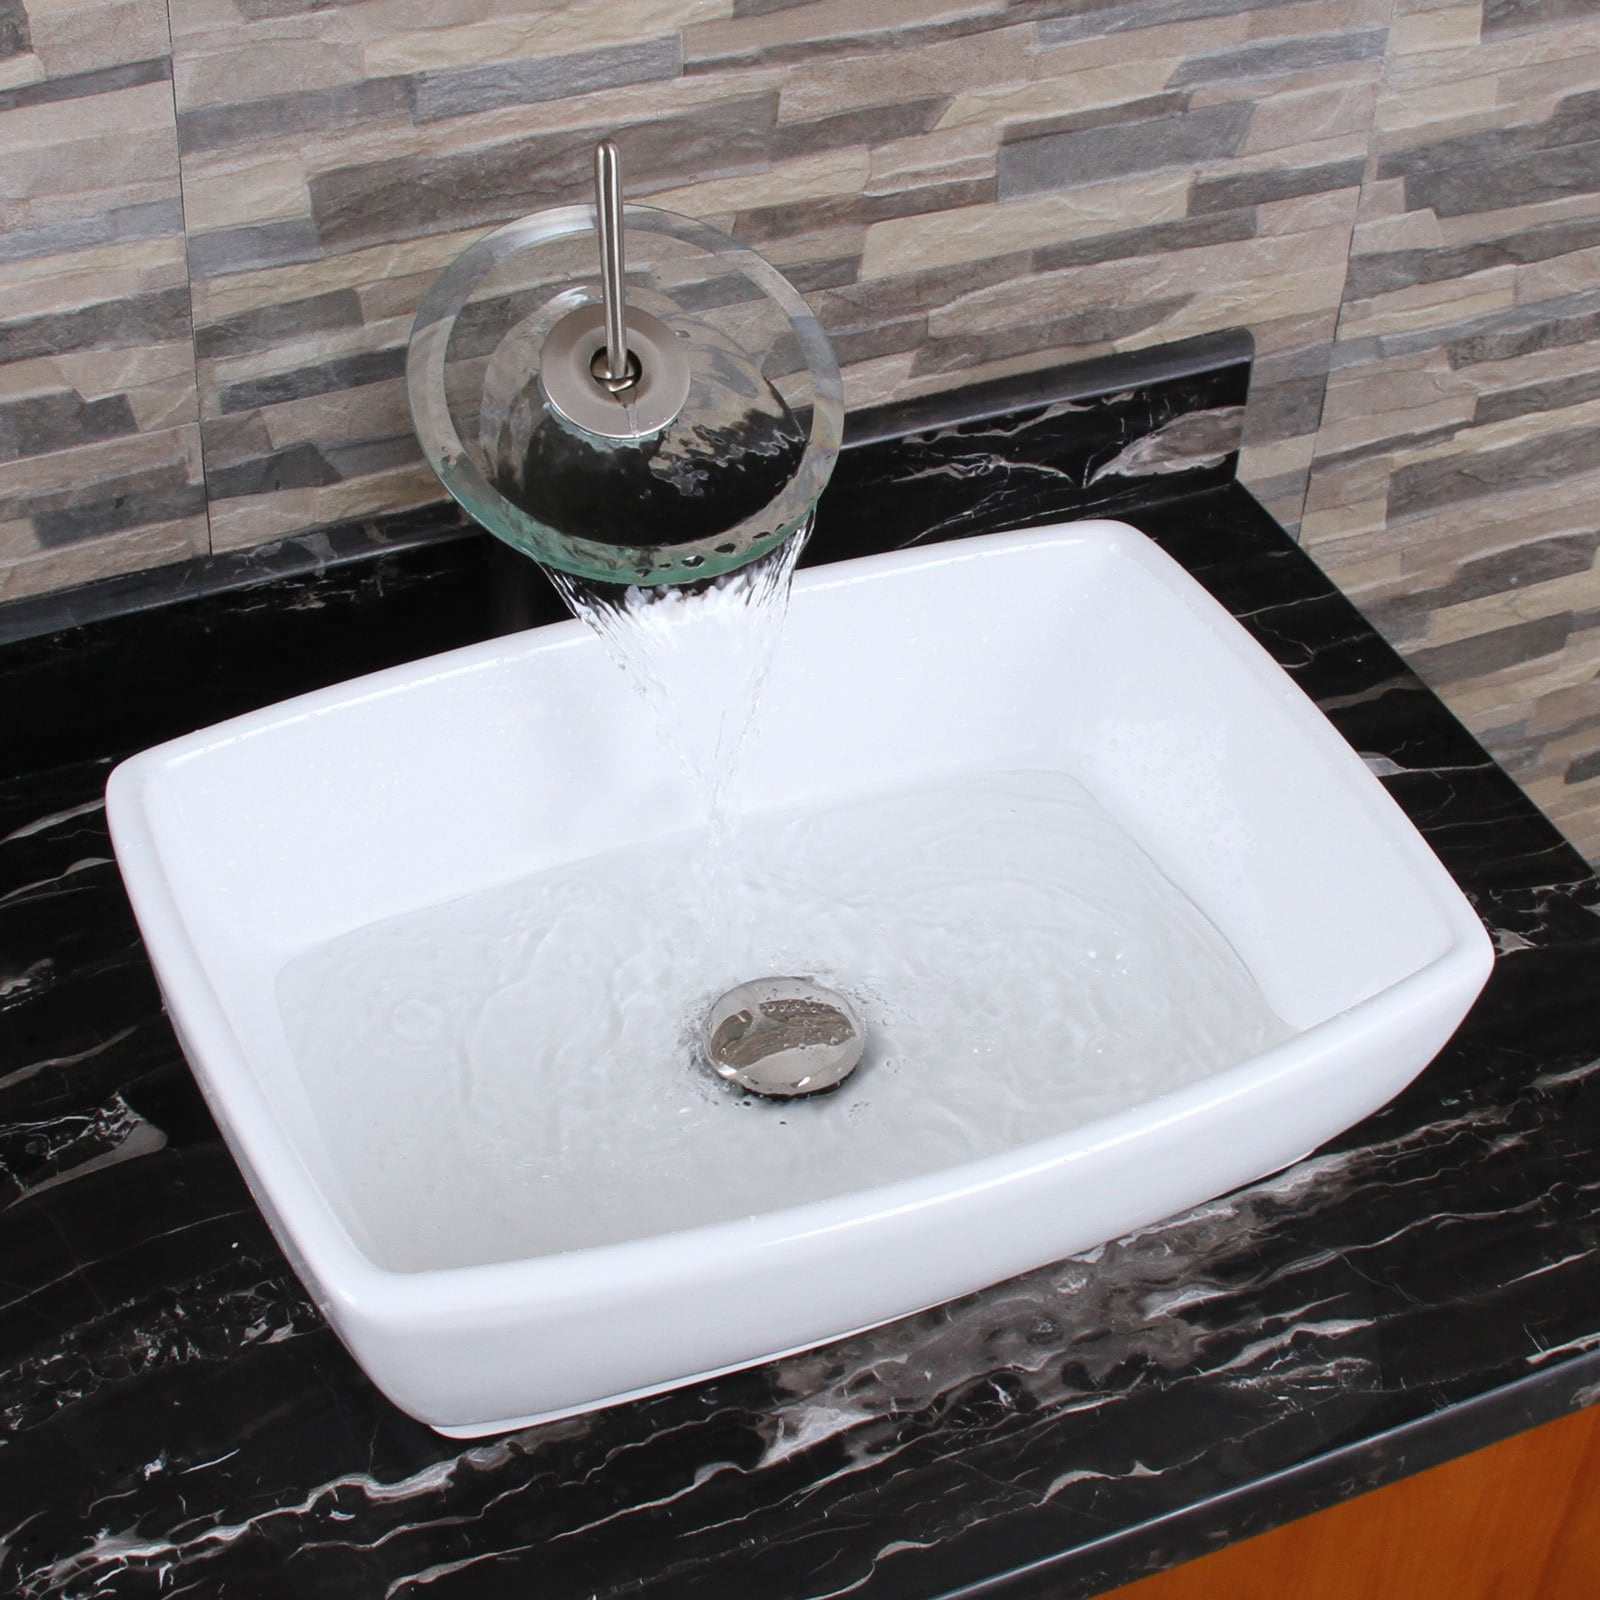 ELIMAX'S 302 Unique Rectangle Shape White Porcelain Ceramic Bathroom Vessel Sink